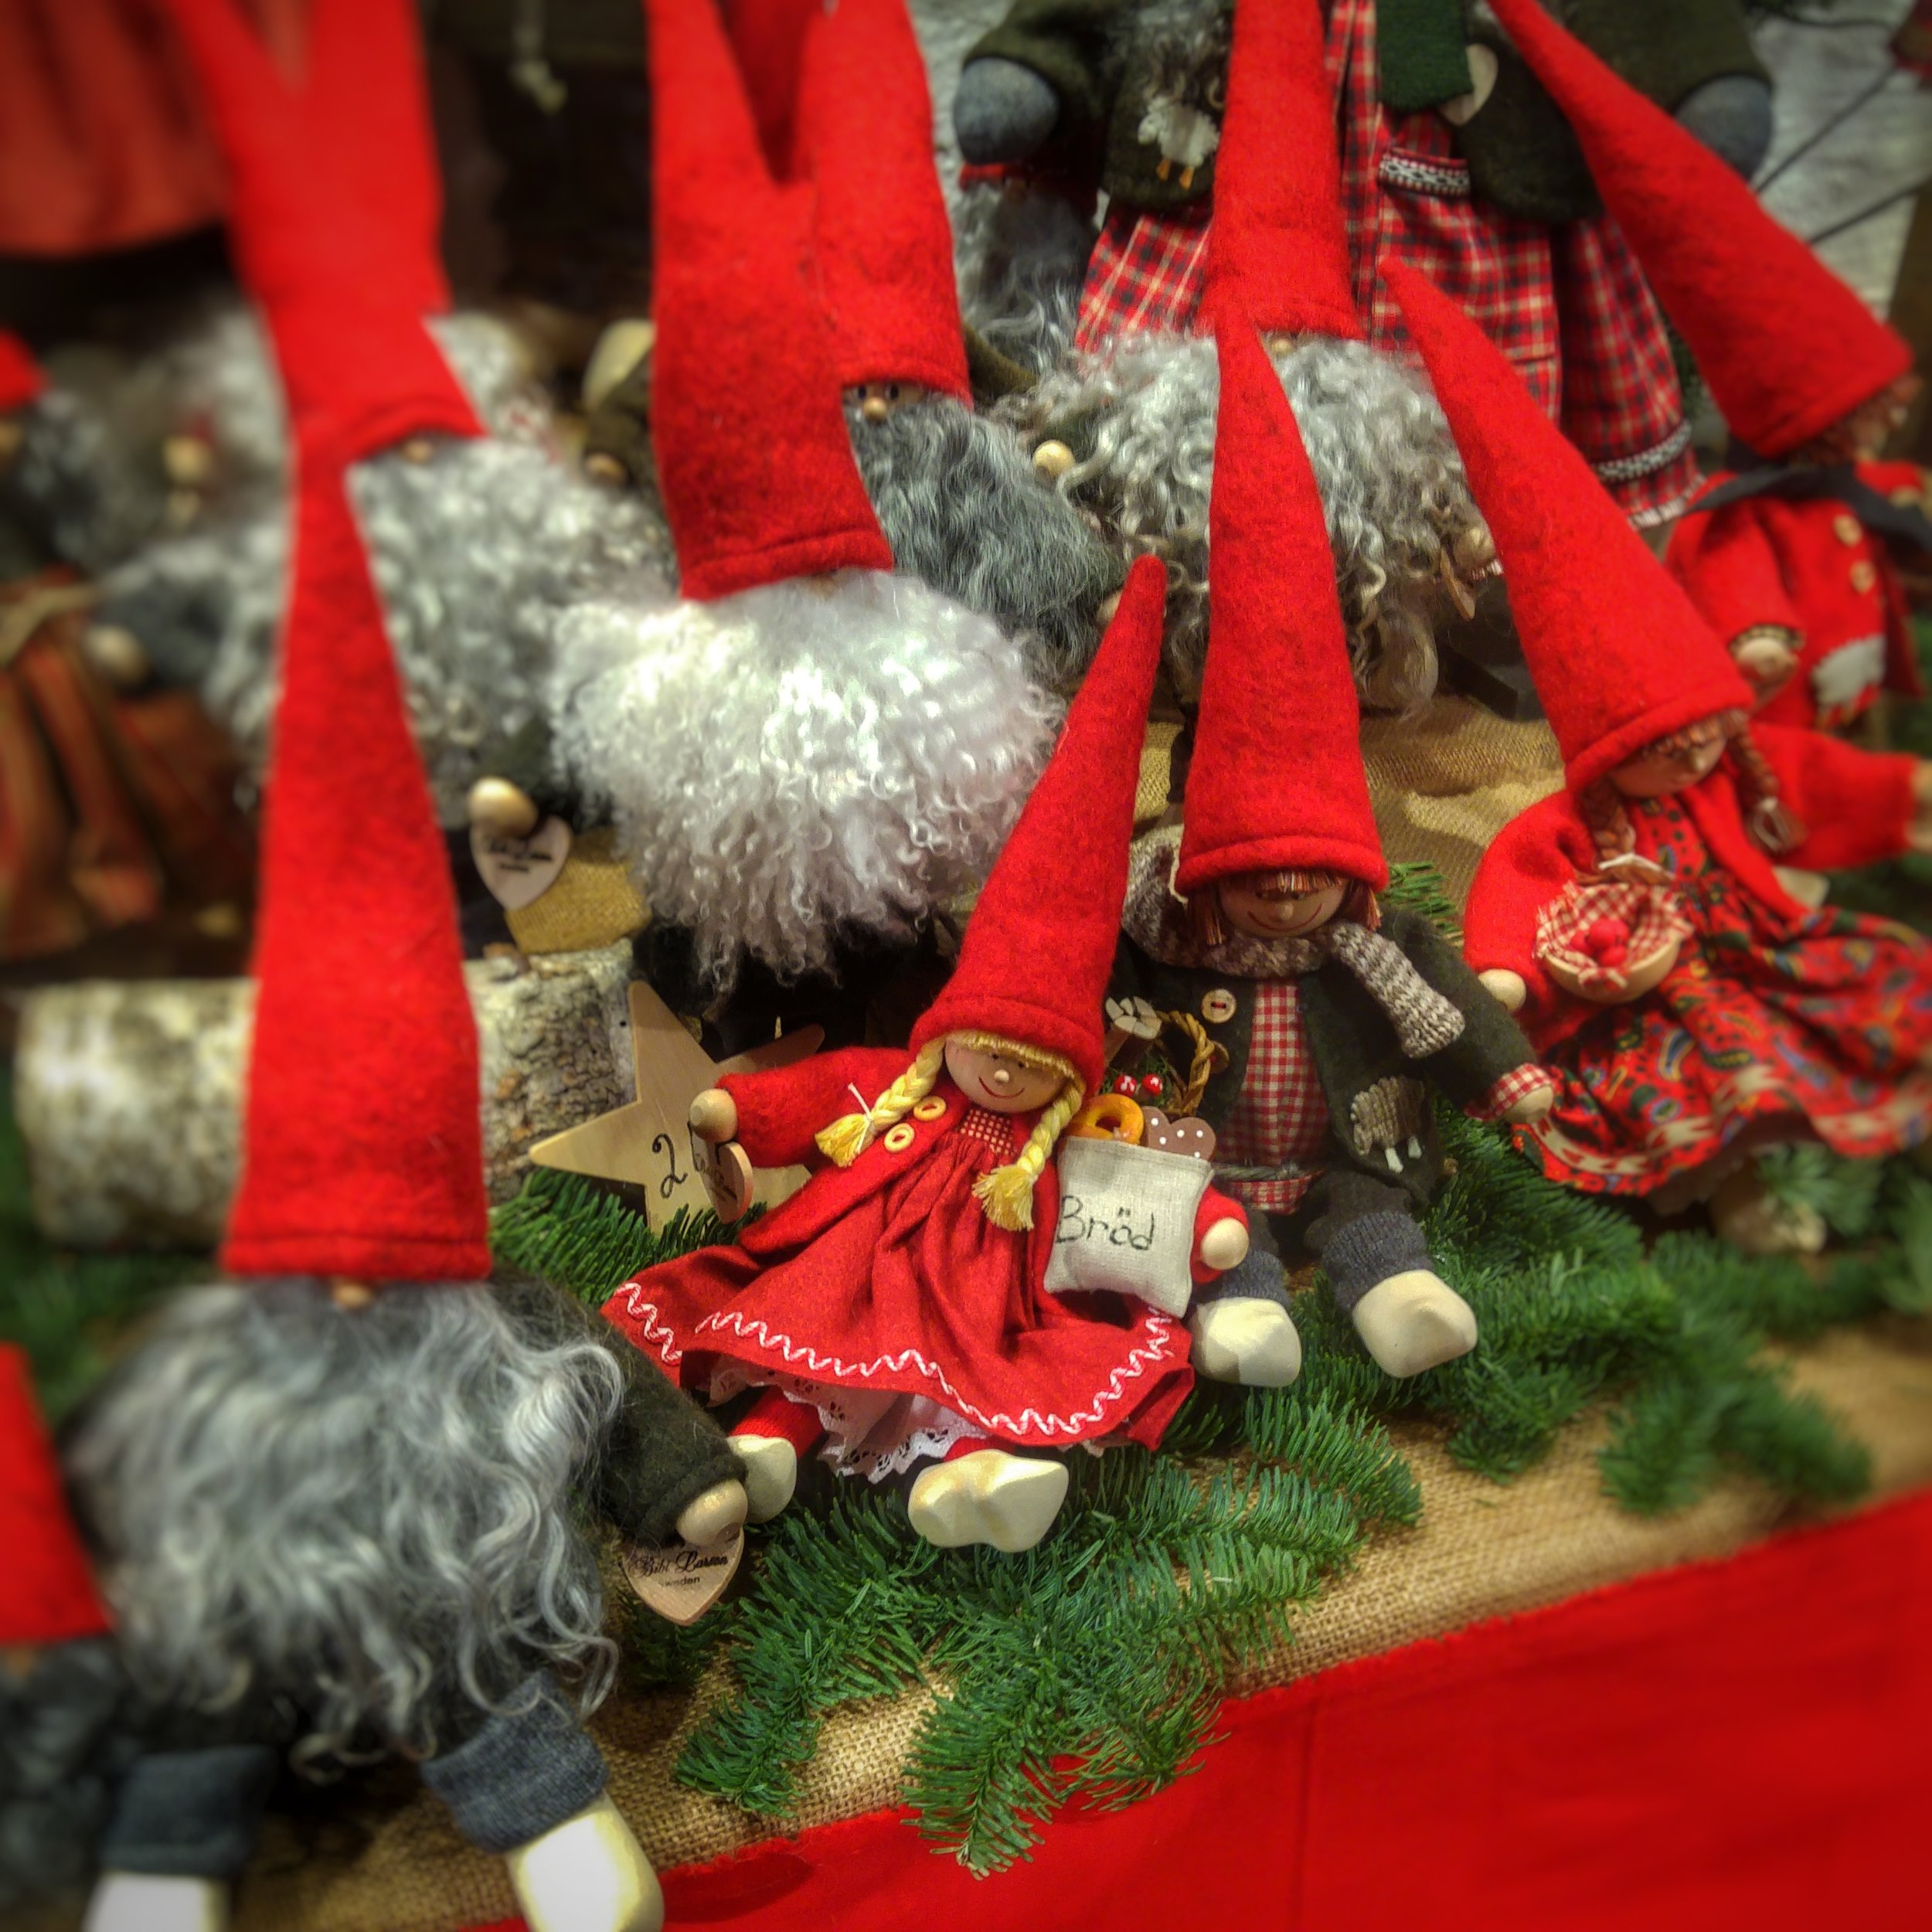 December 4 - Day 339: Gnomes, gnomes, everywhere gnomes!